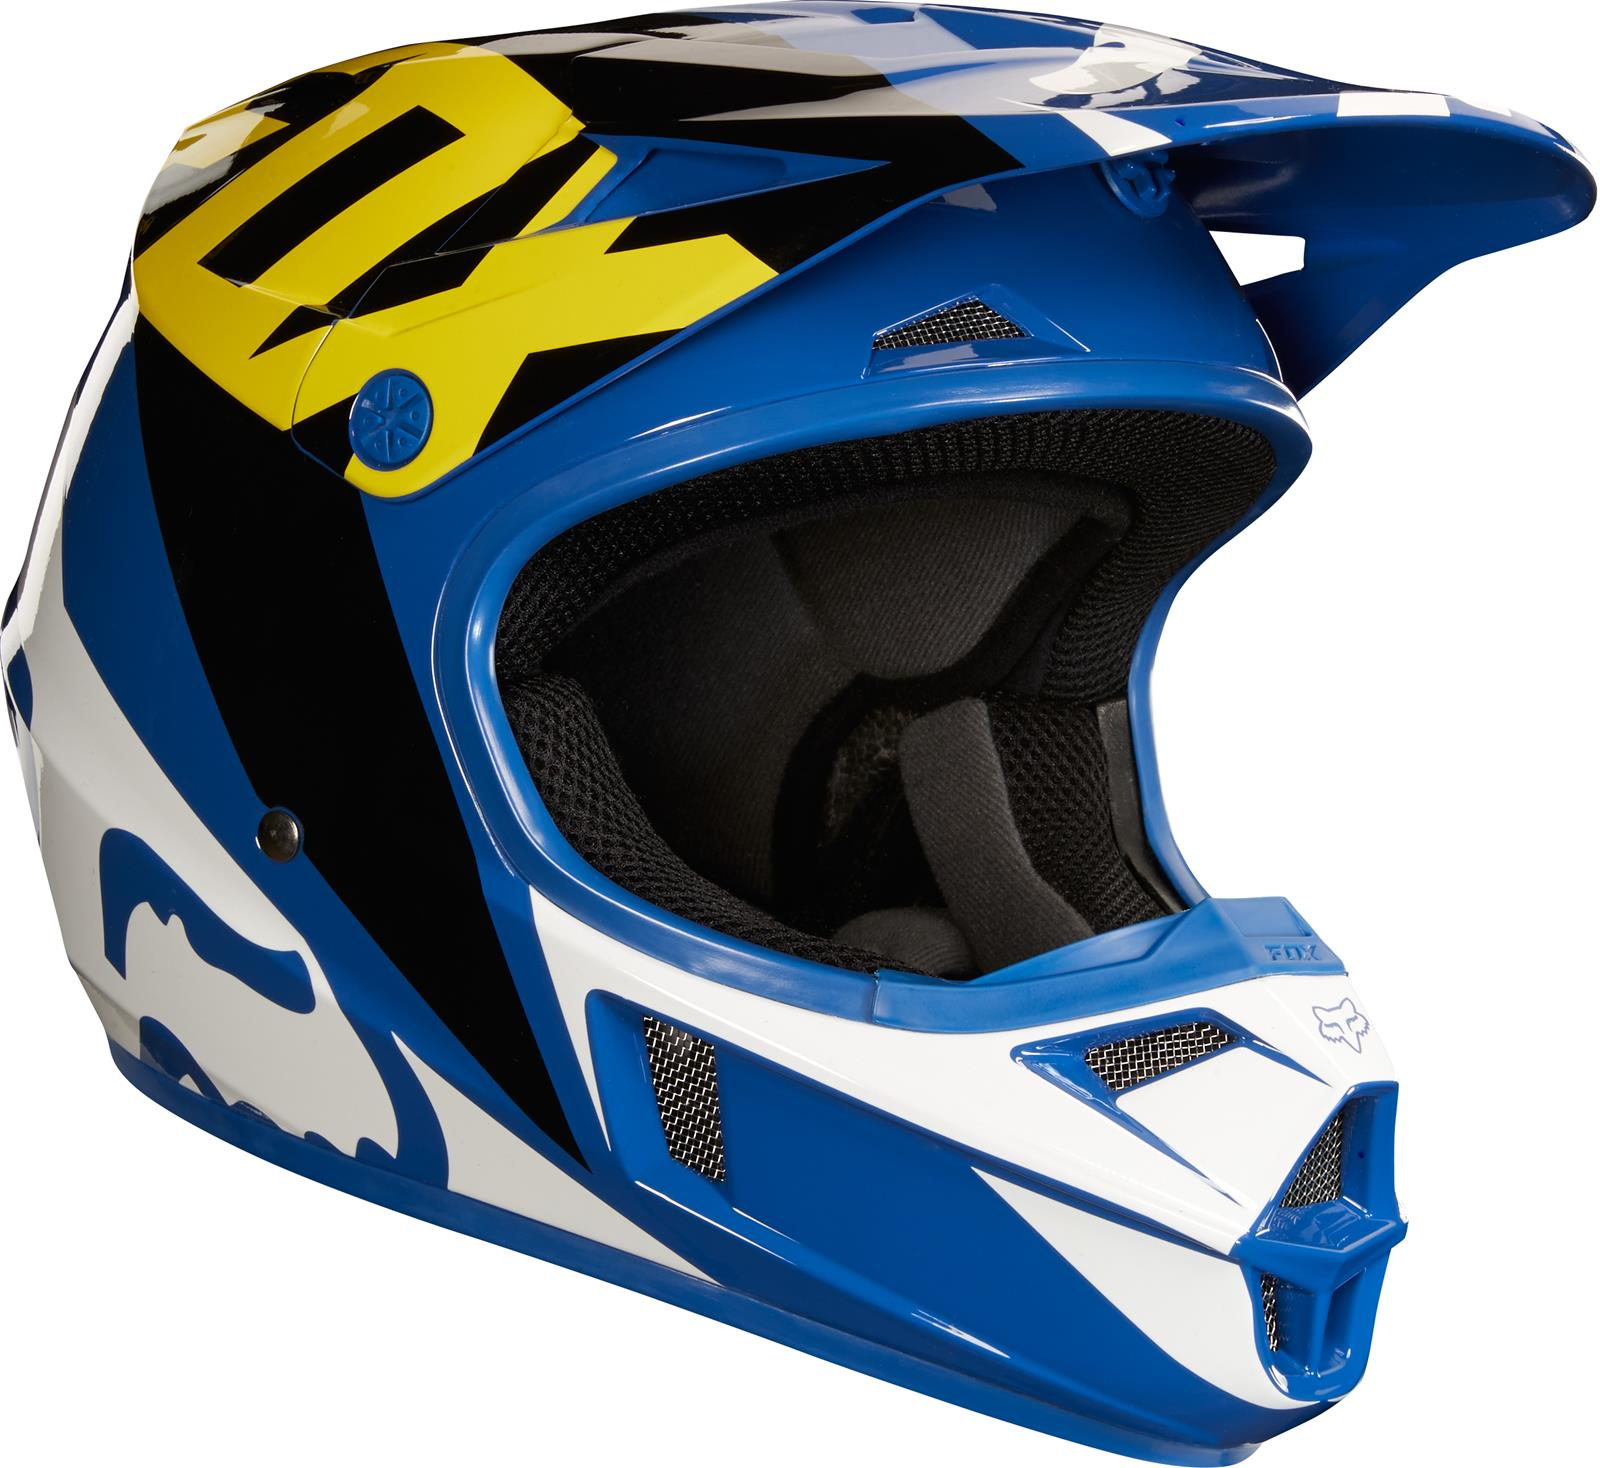 Fox Racing 2018 V1 Helmets 19541-002-S - Free Shipping on Orders Over $99  at Summit Racing